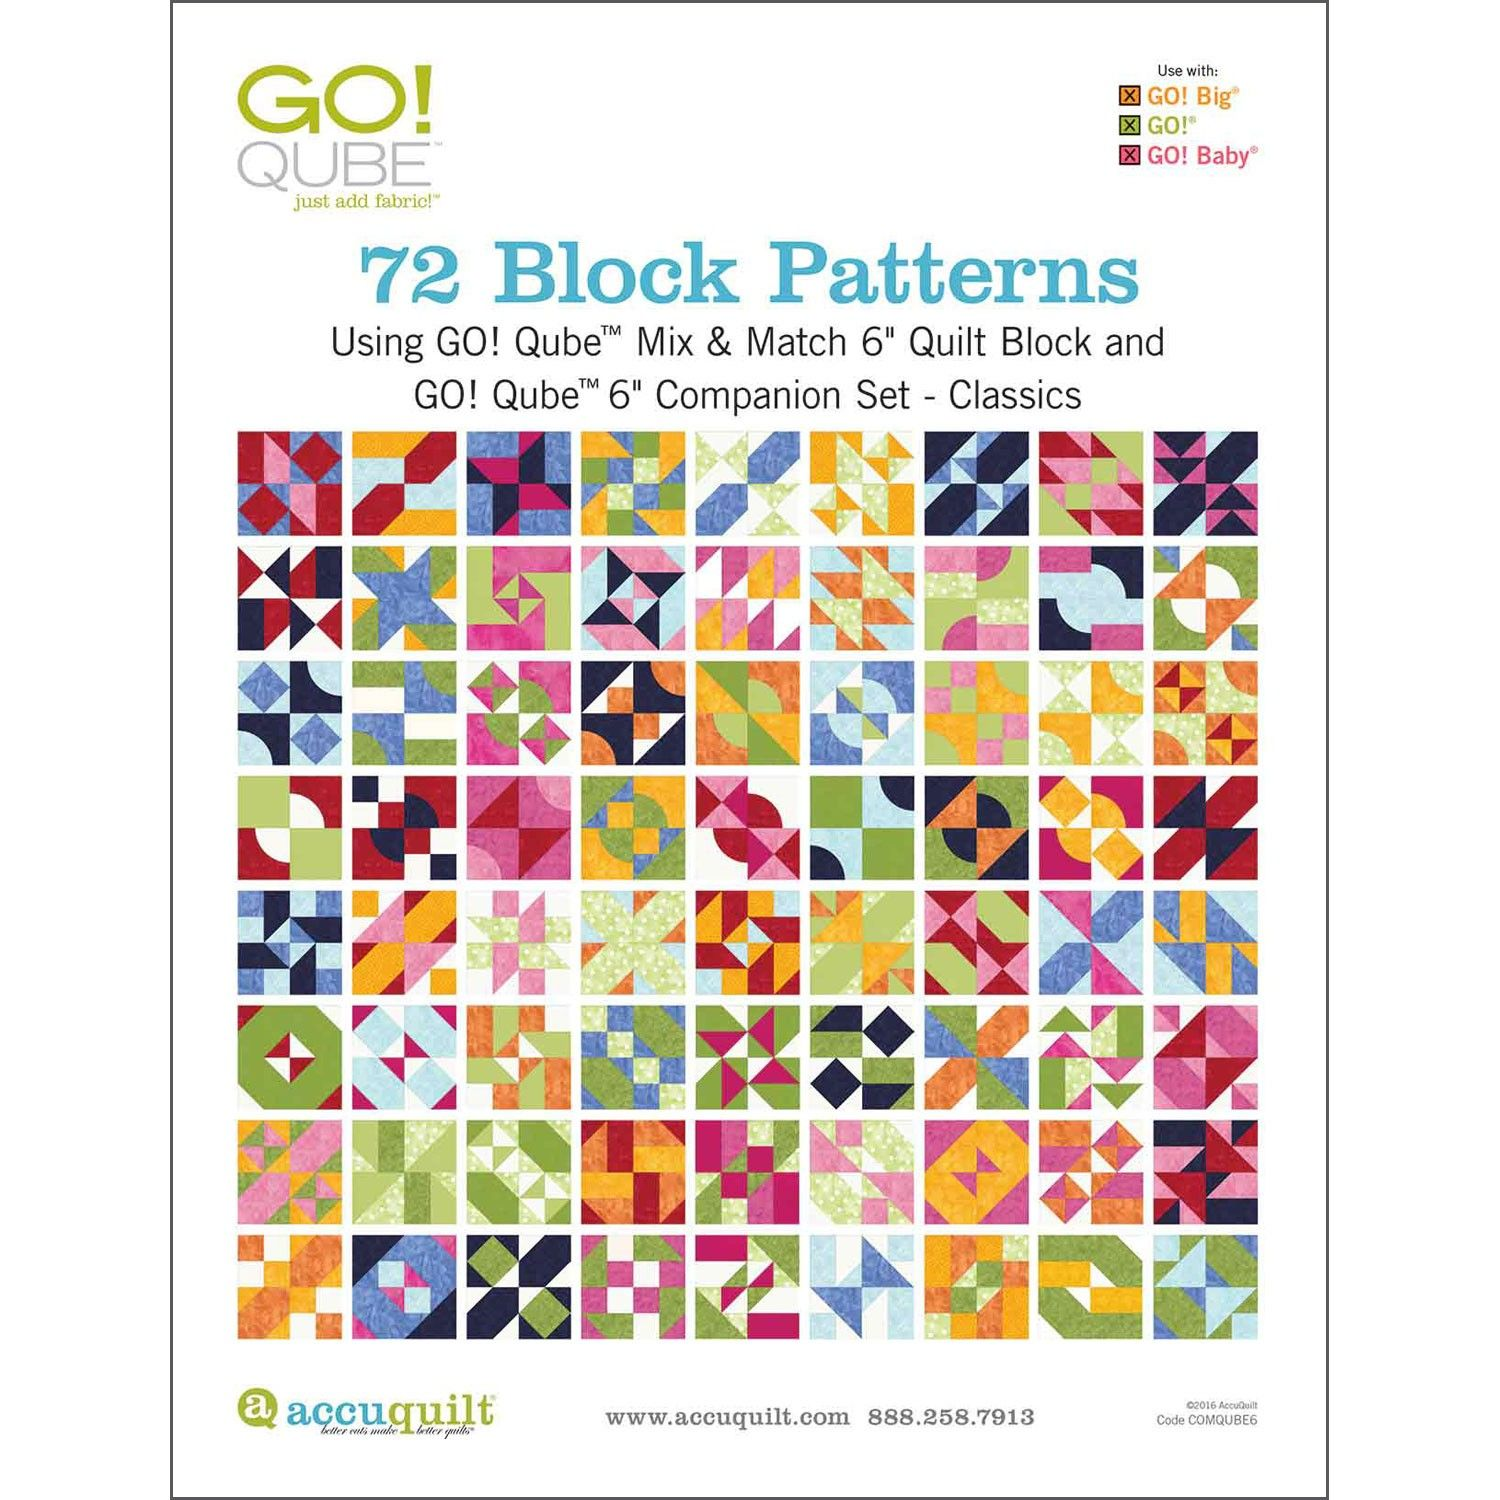 This Is A Must Have Pattern Booklet You Get 72 Free Block